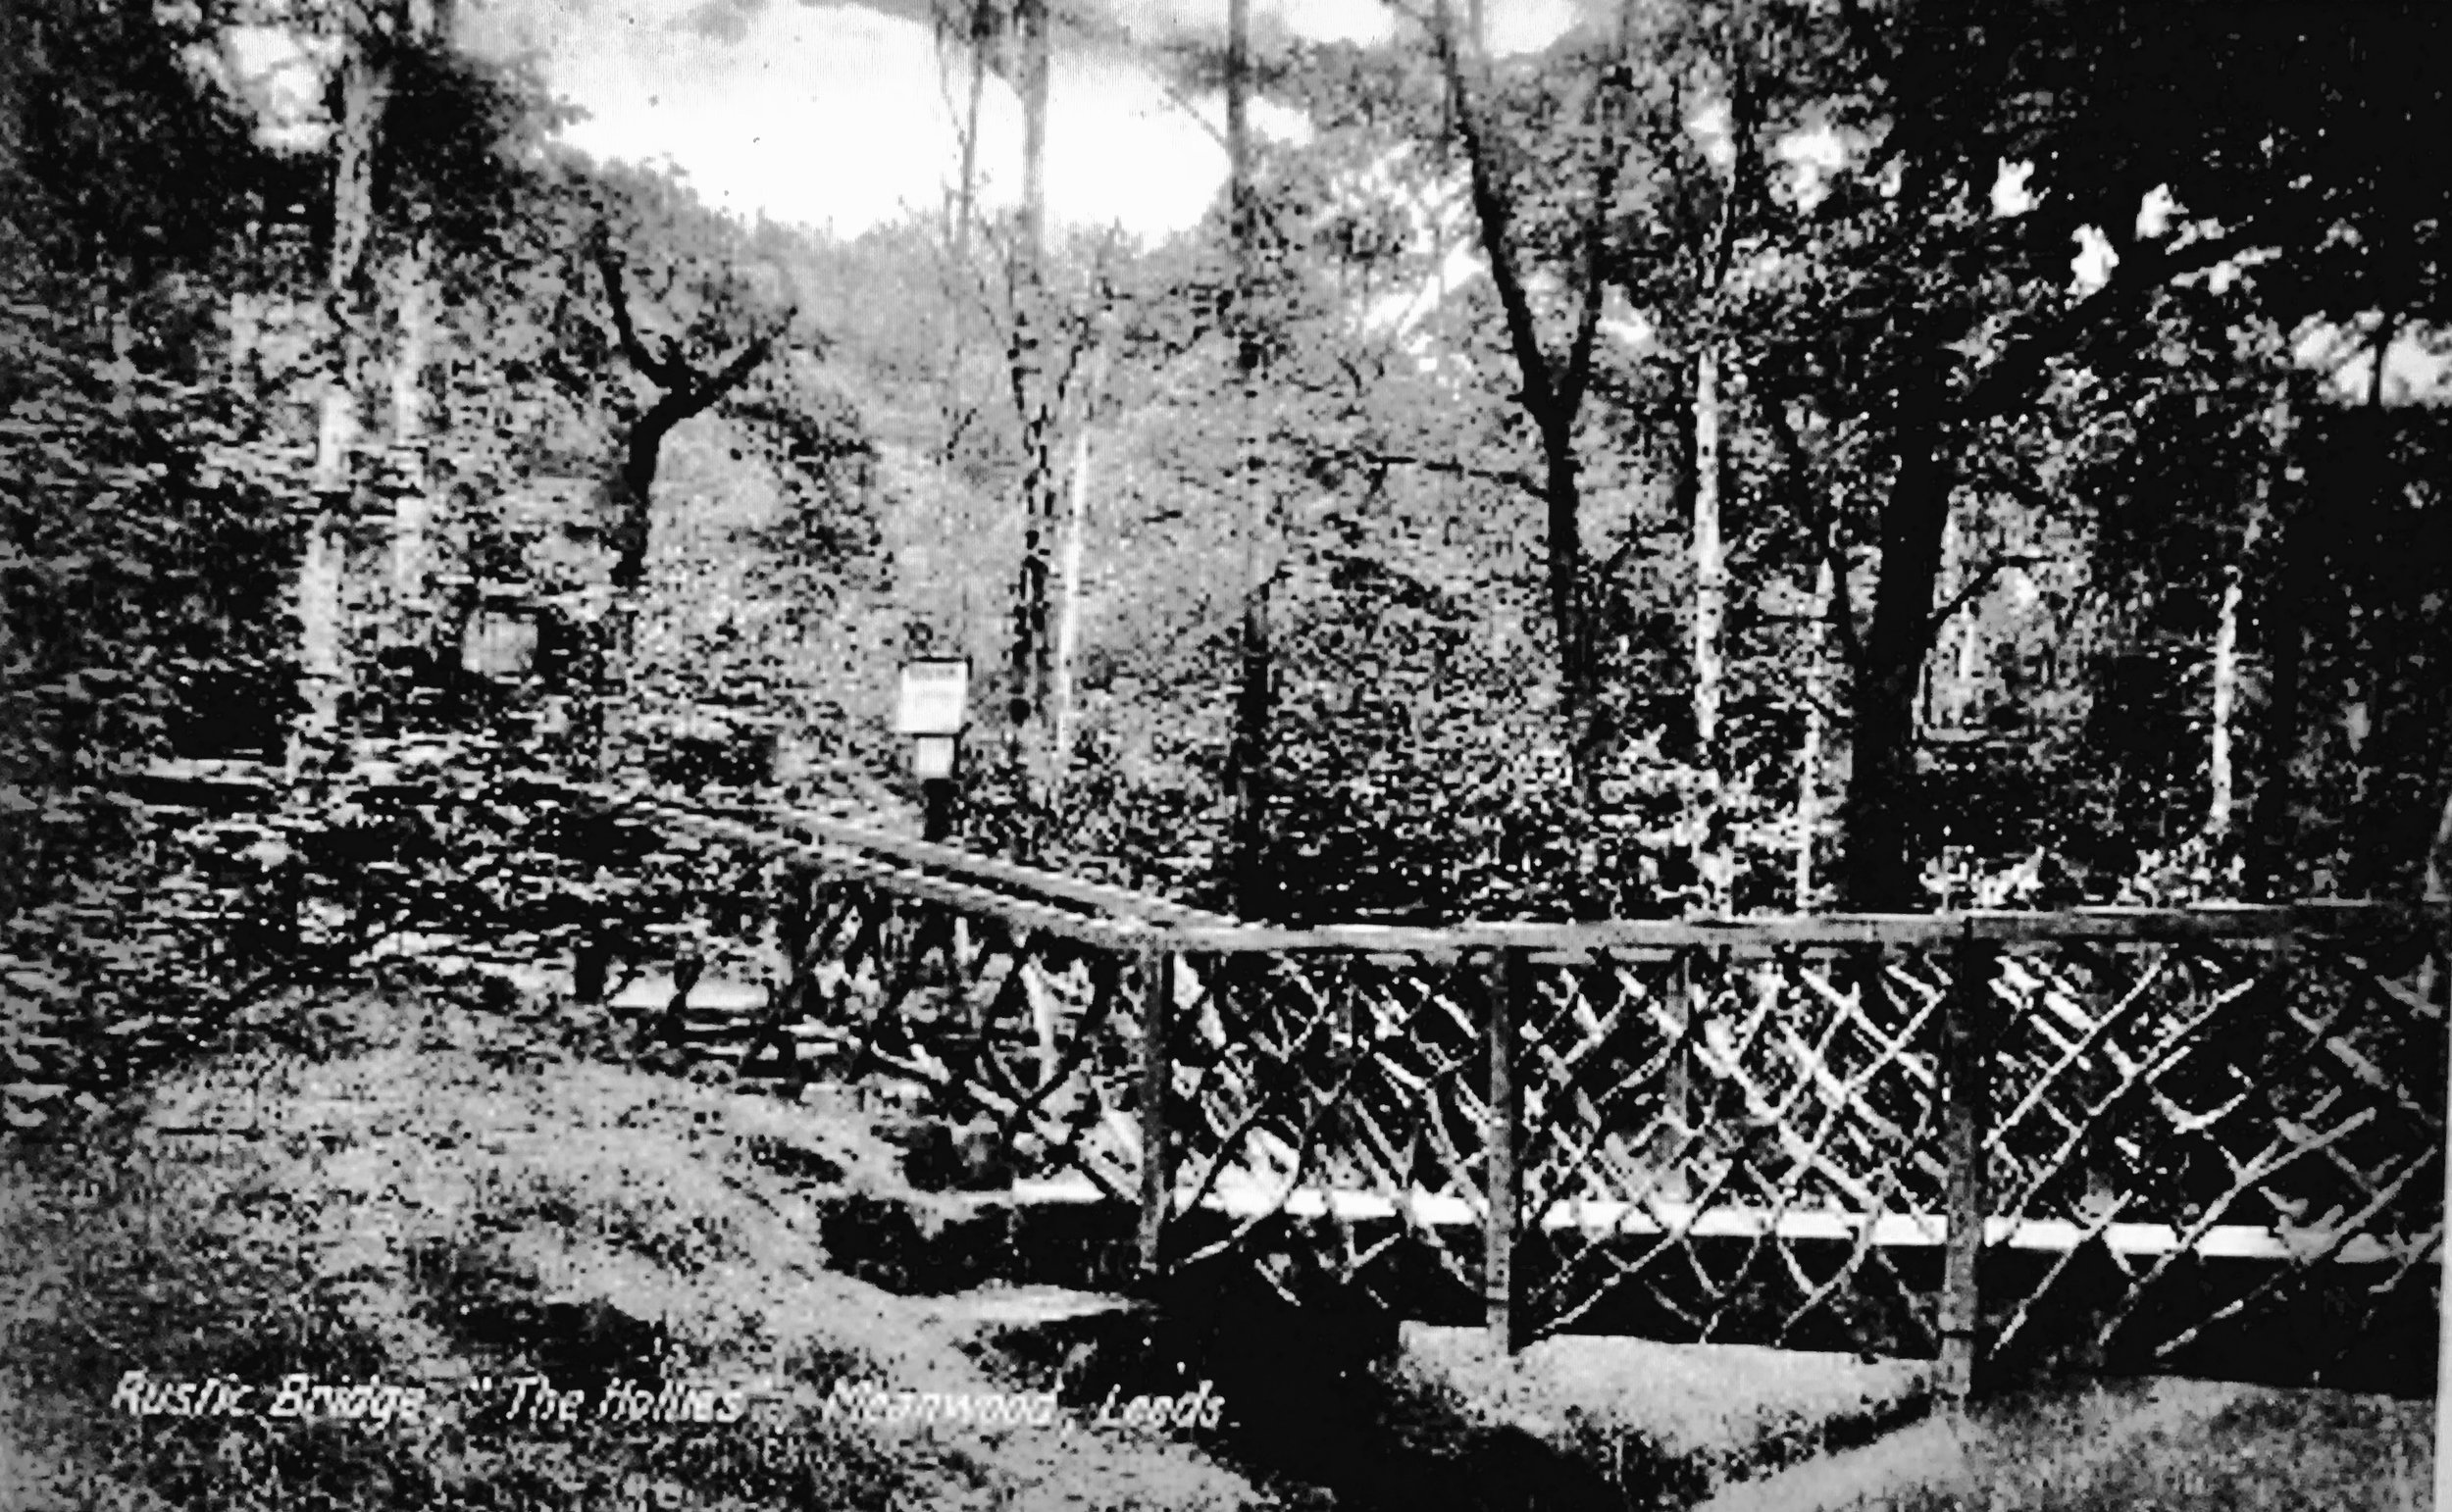 The Hollies Rustic Bridge